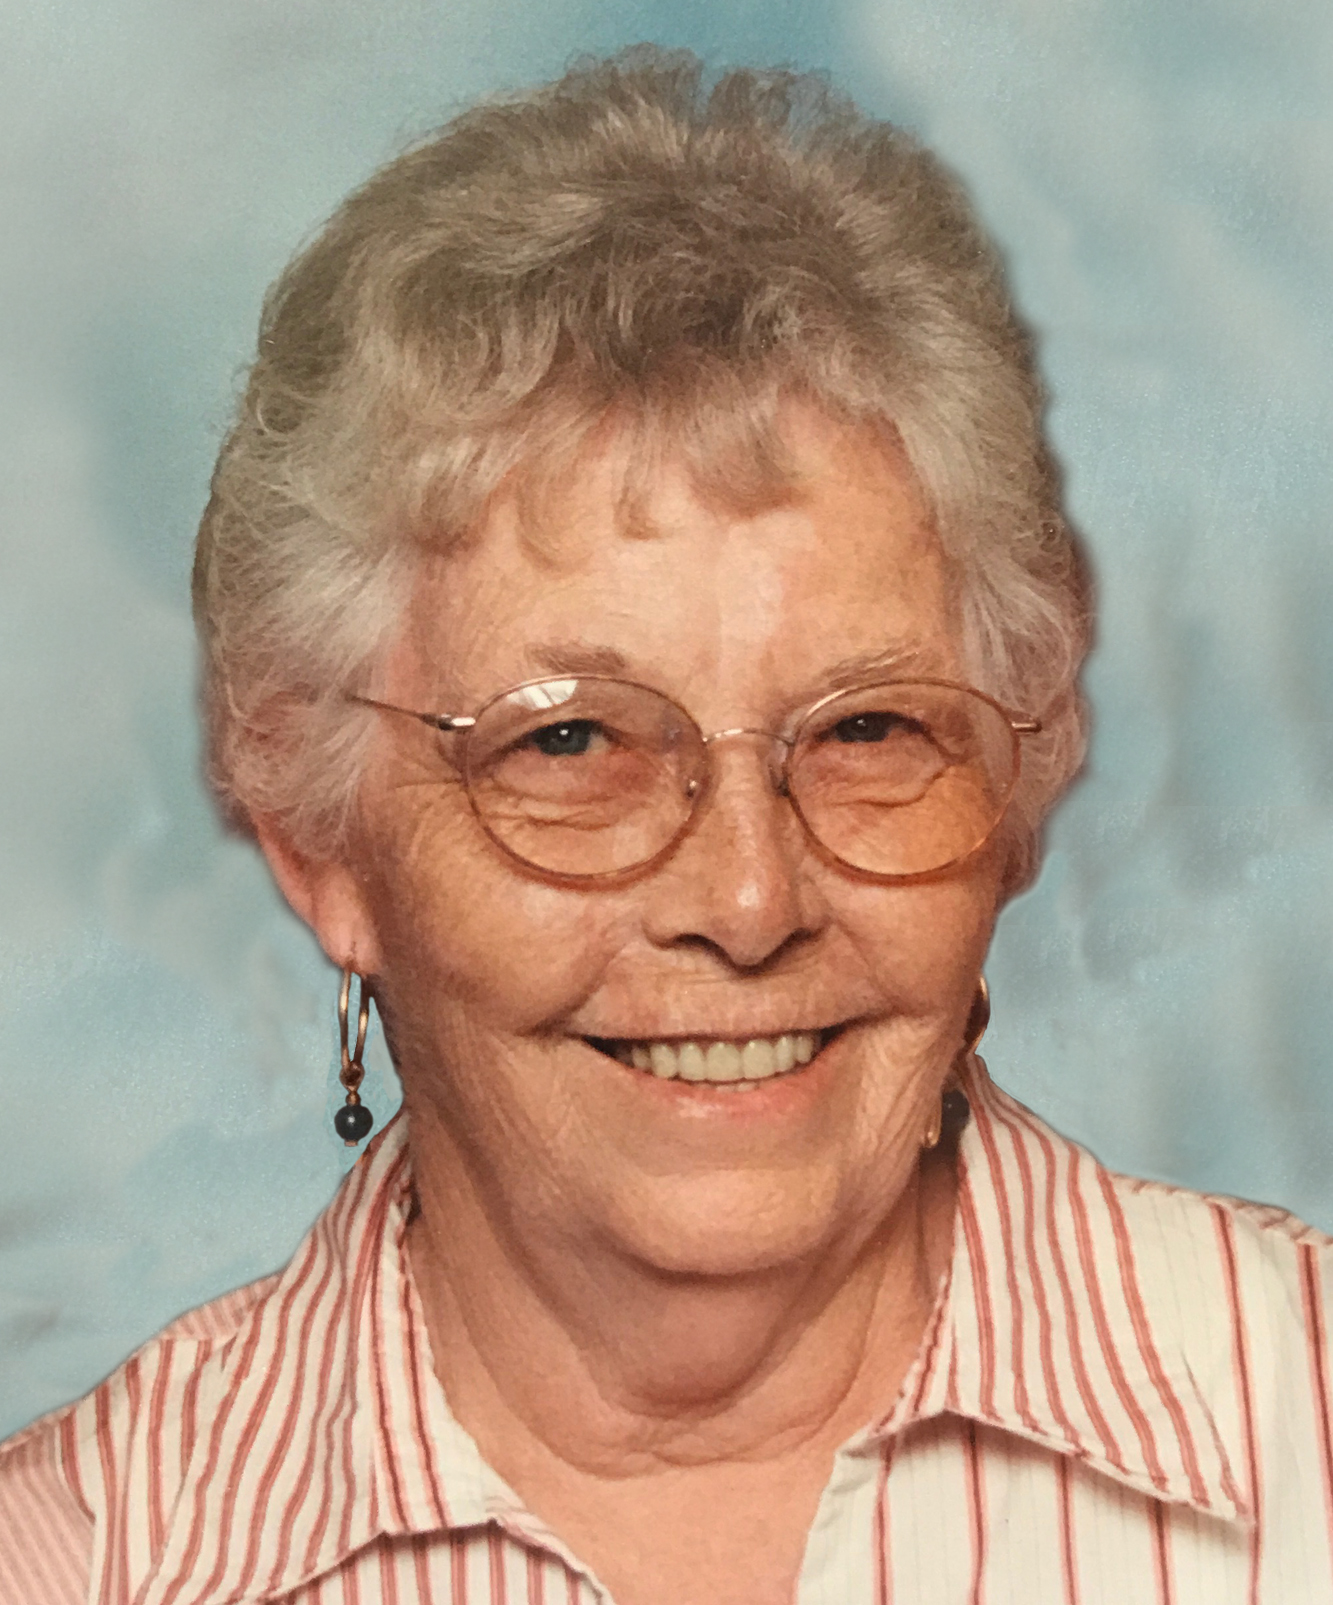 Shirley Letha Scarrow, 76 years of age, of Oxford, Nebraska